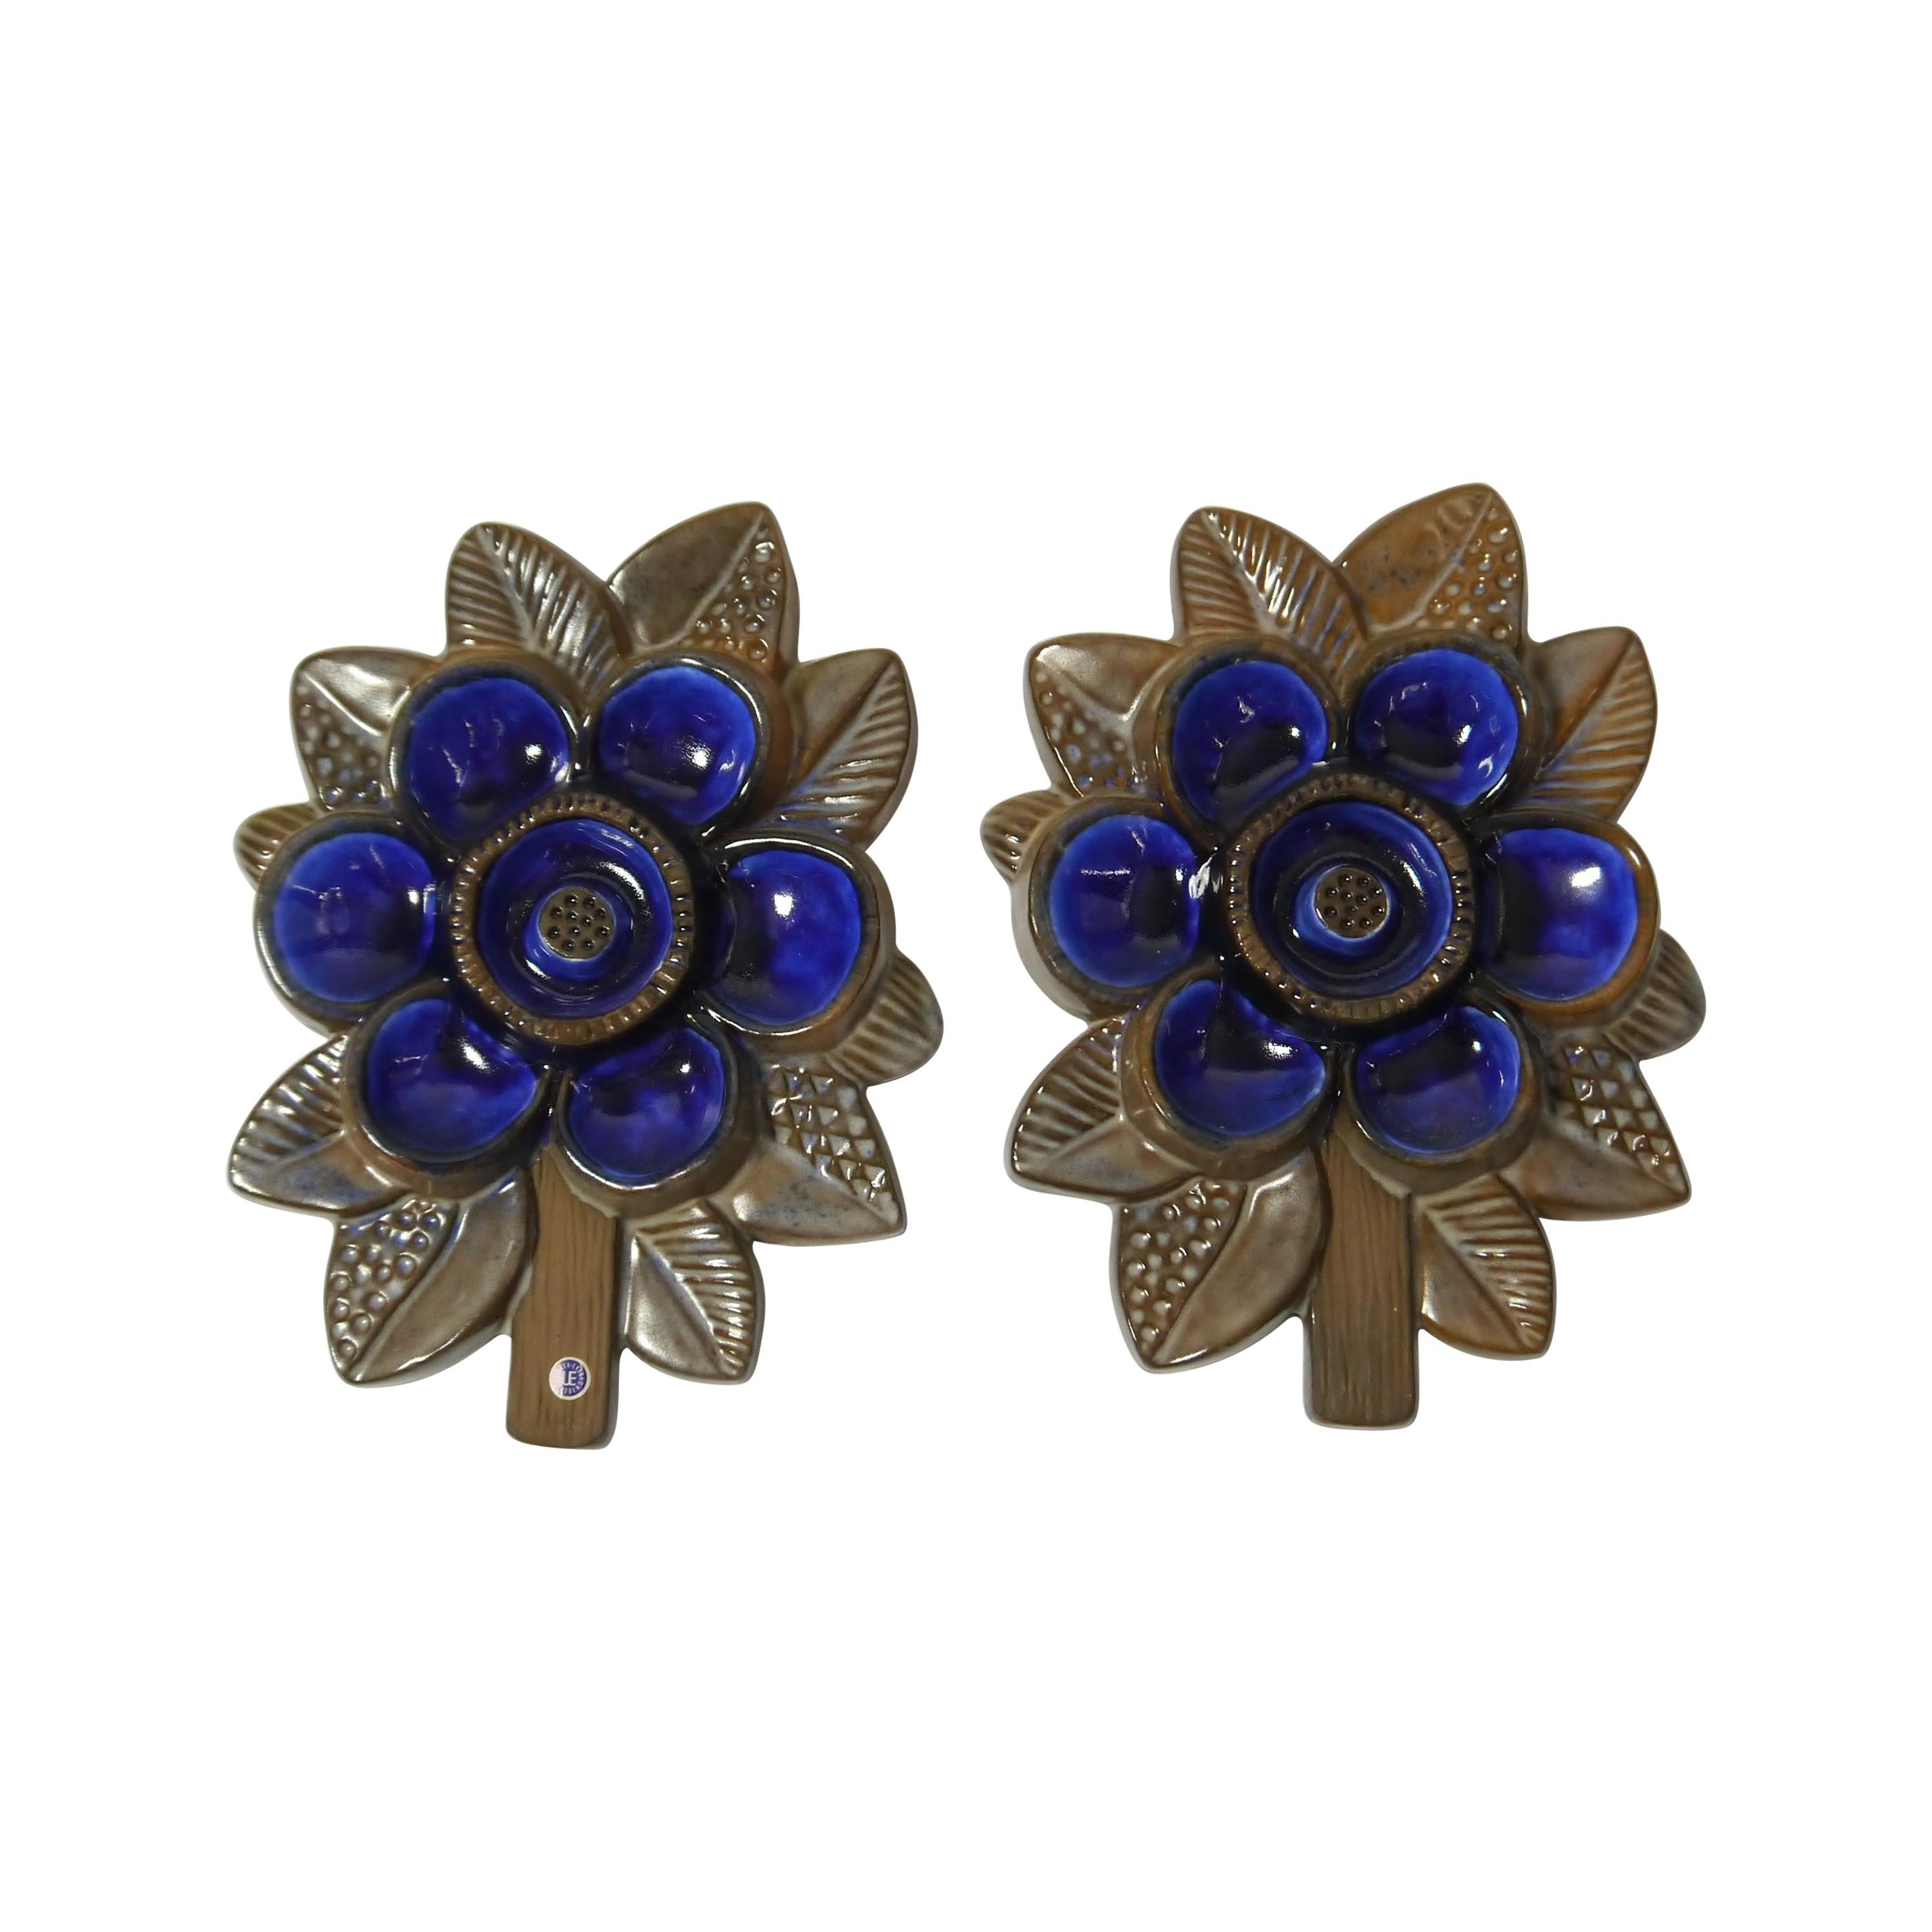 Pair of Ceramic Blue Flower Wall Plaque by Irma Yourstone for Upsala Ekeby